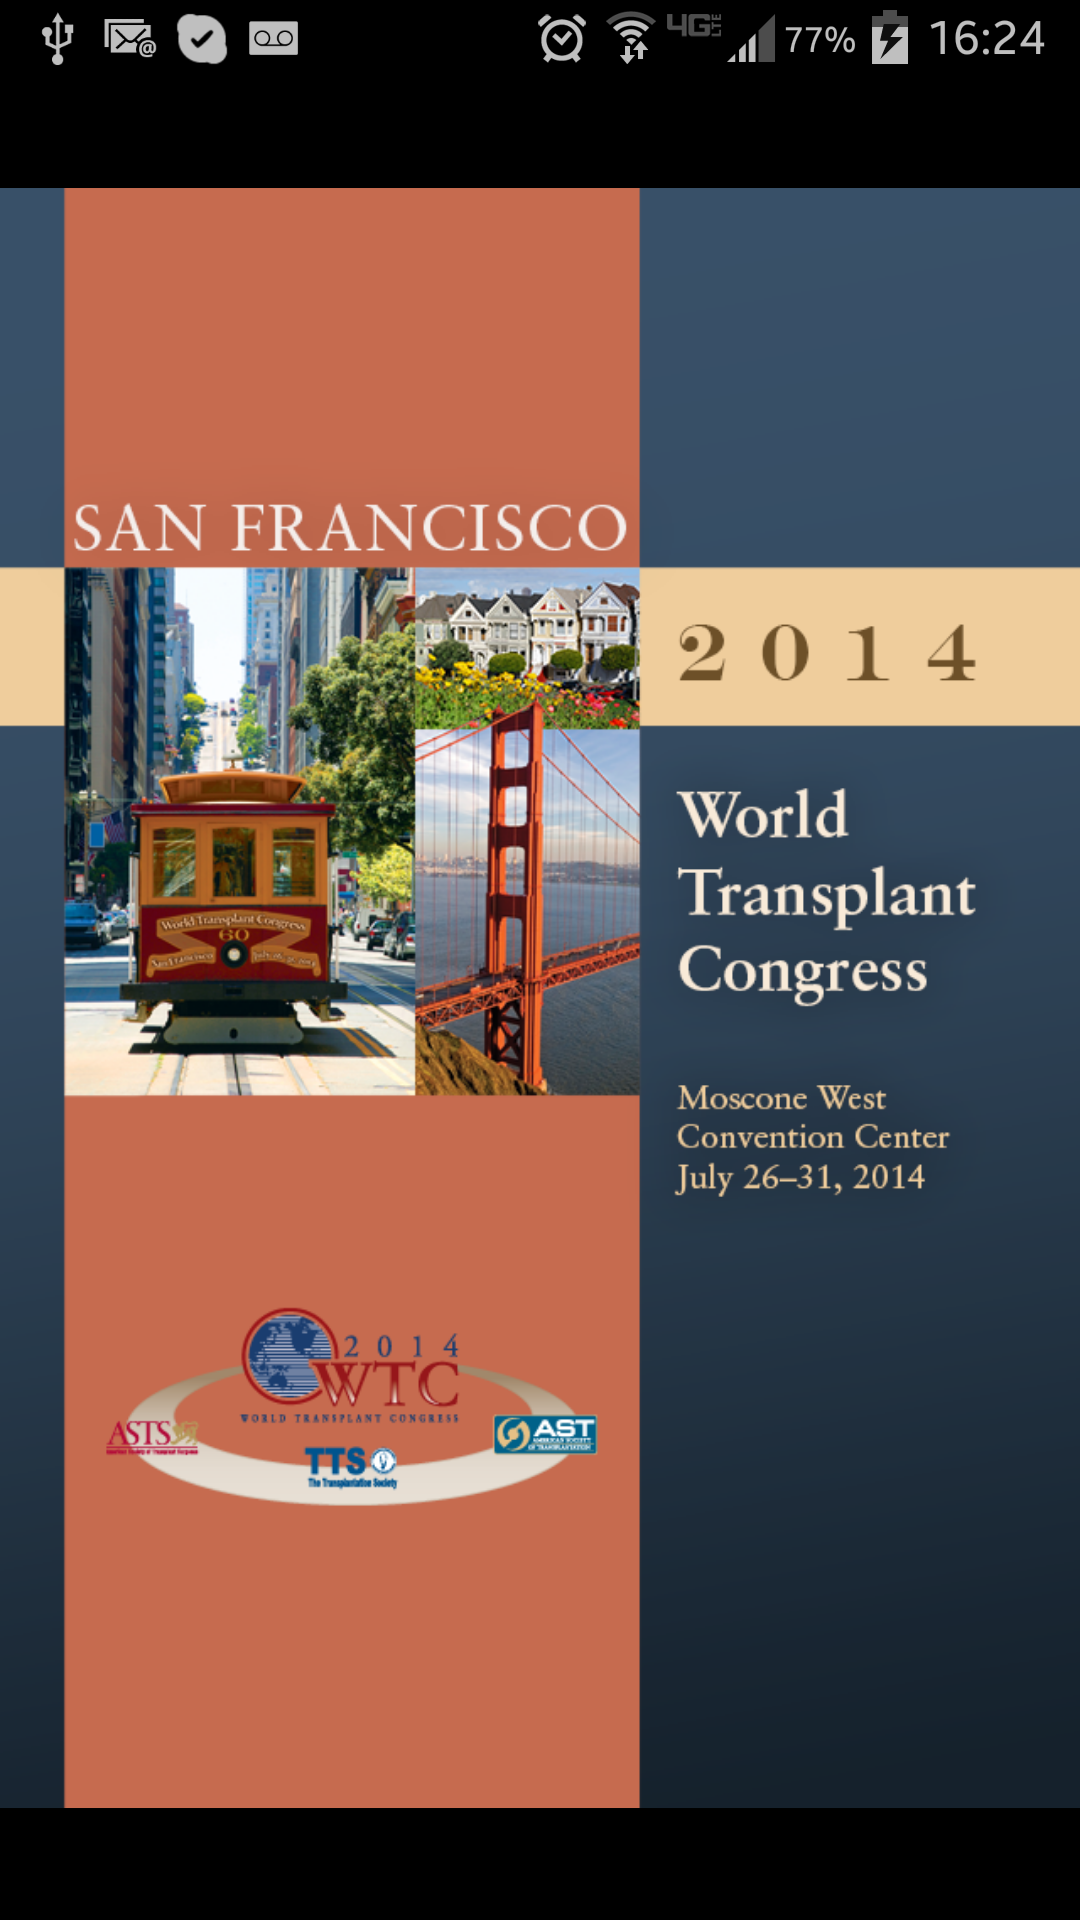 World Transplant Congress 2014 EventPilot Conference App